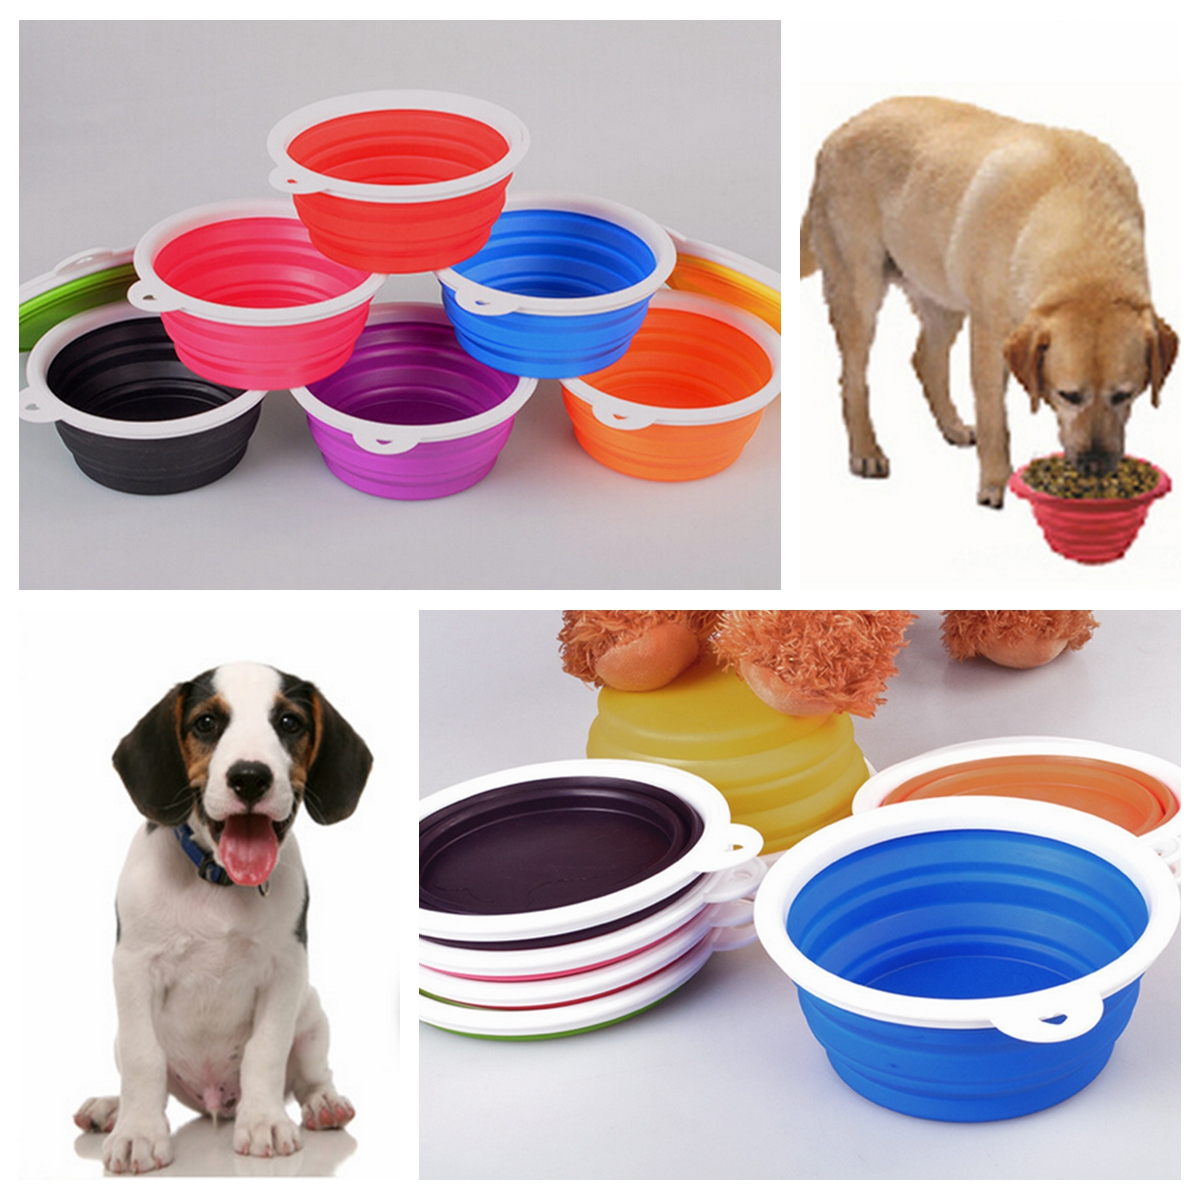 Collapsible Silicone Pet Bowl Expandable Cup Dish For Pet Dog/Cat Food Water Feeding Portable Travel Bowl